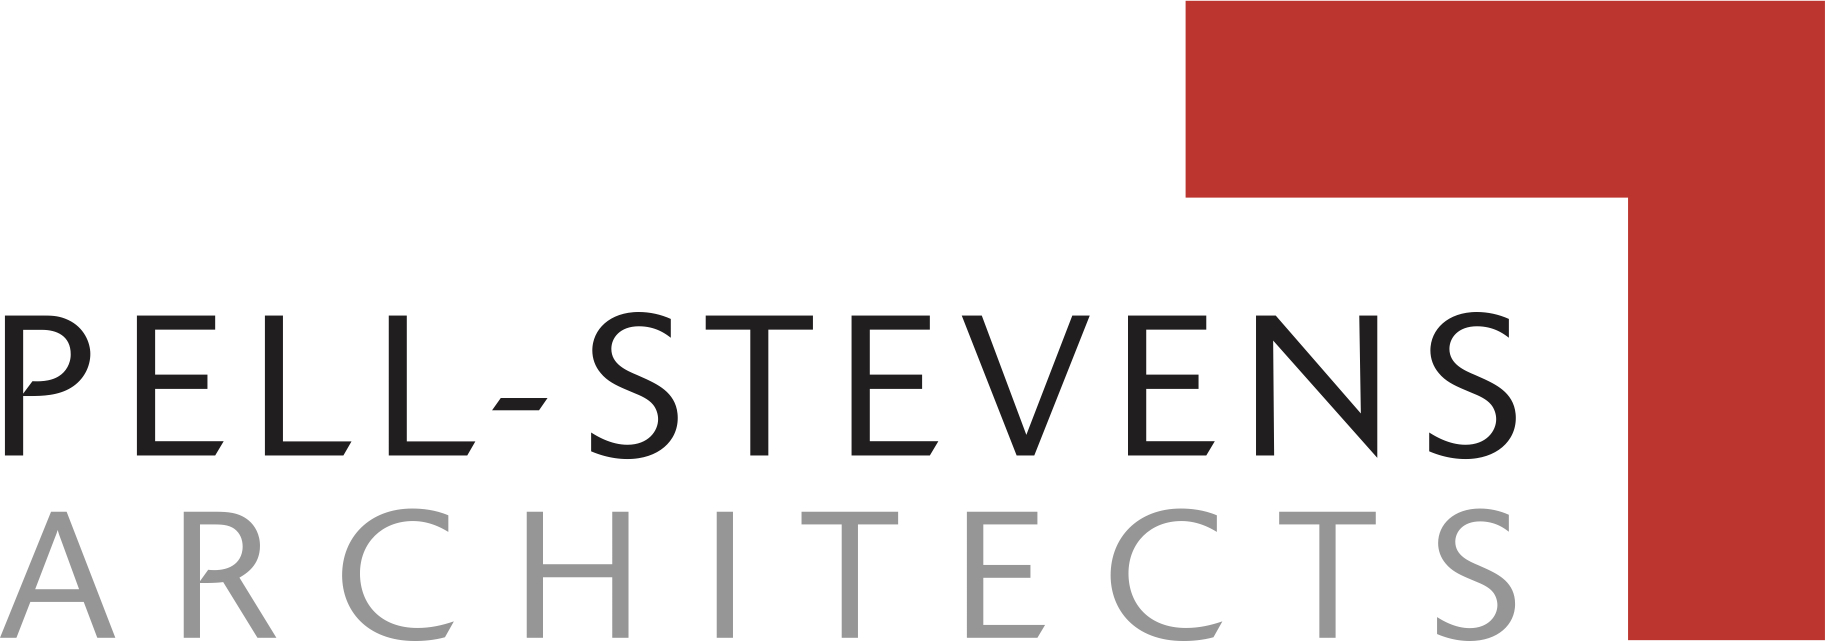 Pell-Stevens Architects logo